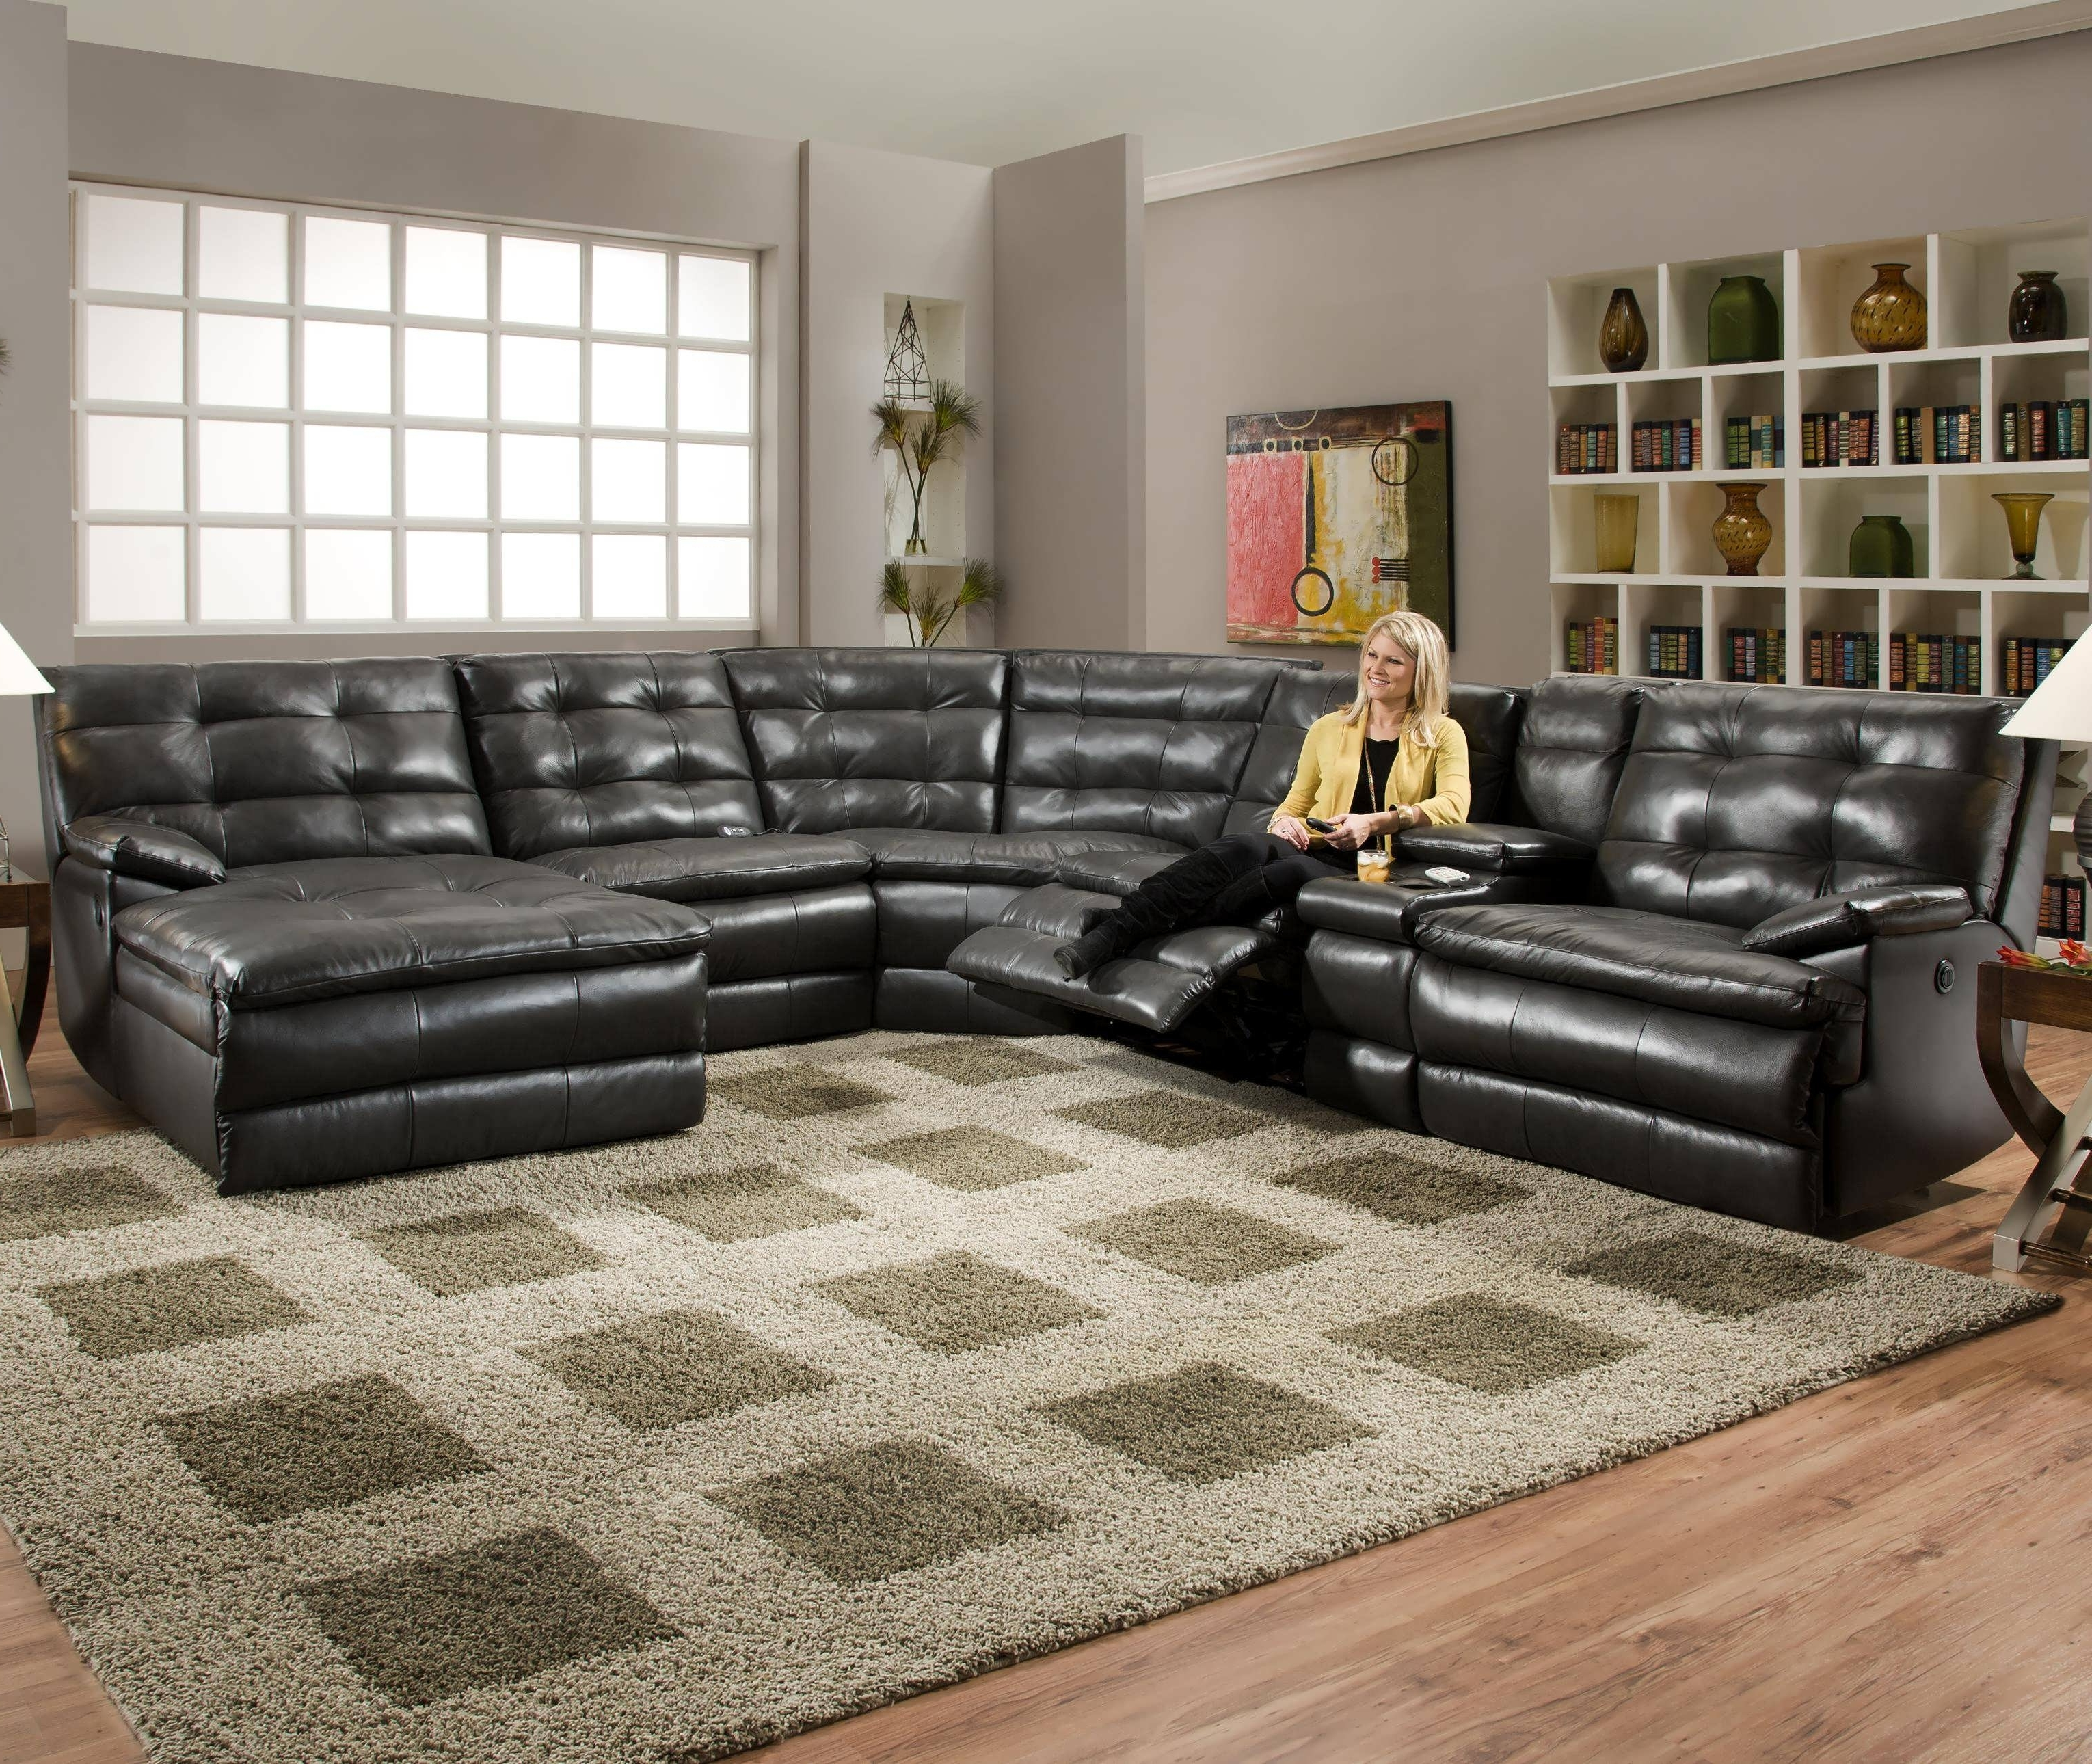 Sofa : Couch Sectionals Chaise Sofa Reclining Sectional With Regarding Latest Sofa Sectionals With Chaise (View 9 of 15)